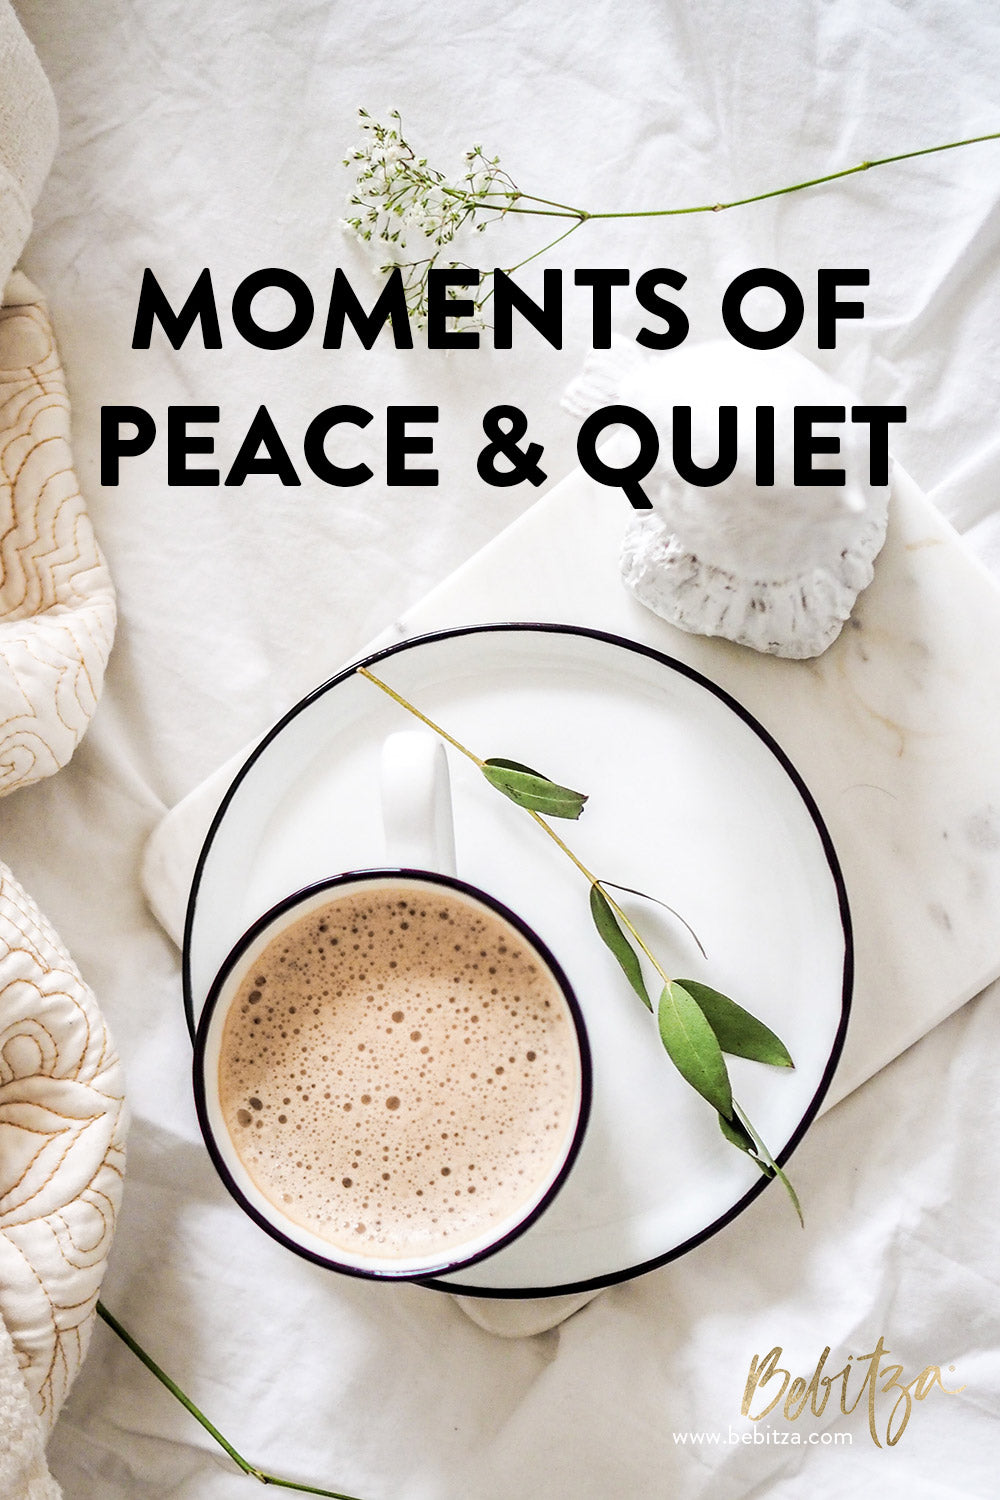 Moments of Peace & Quiet